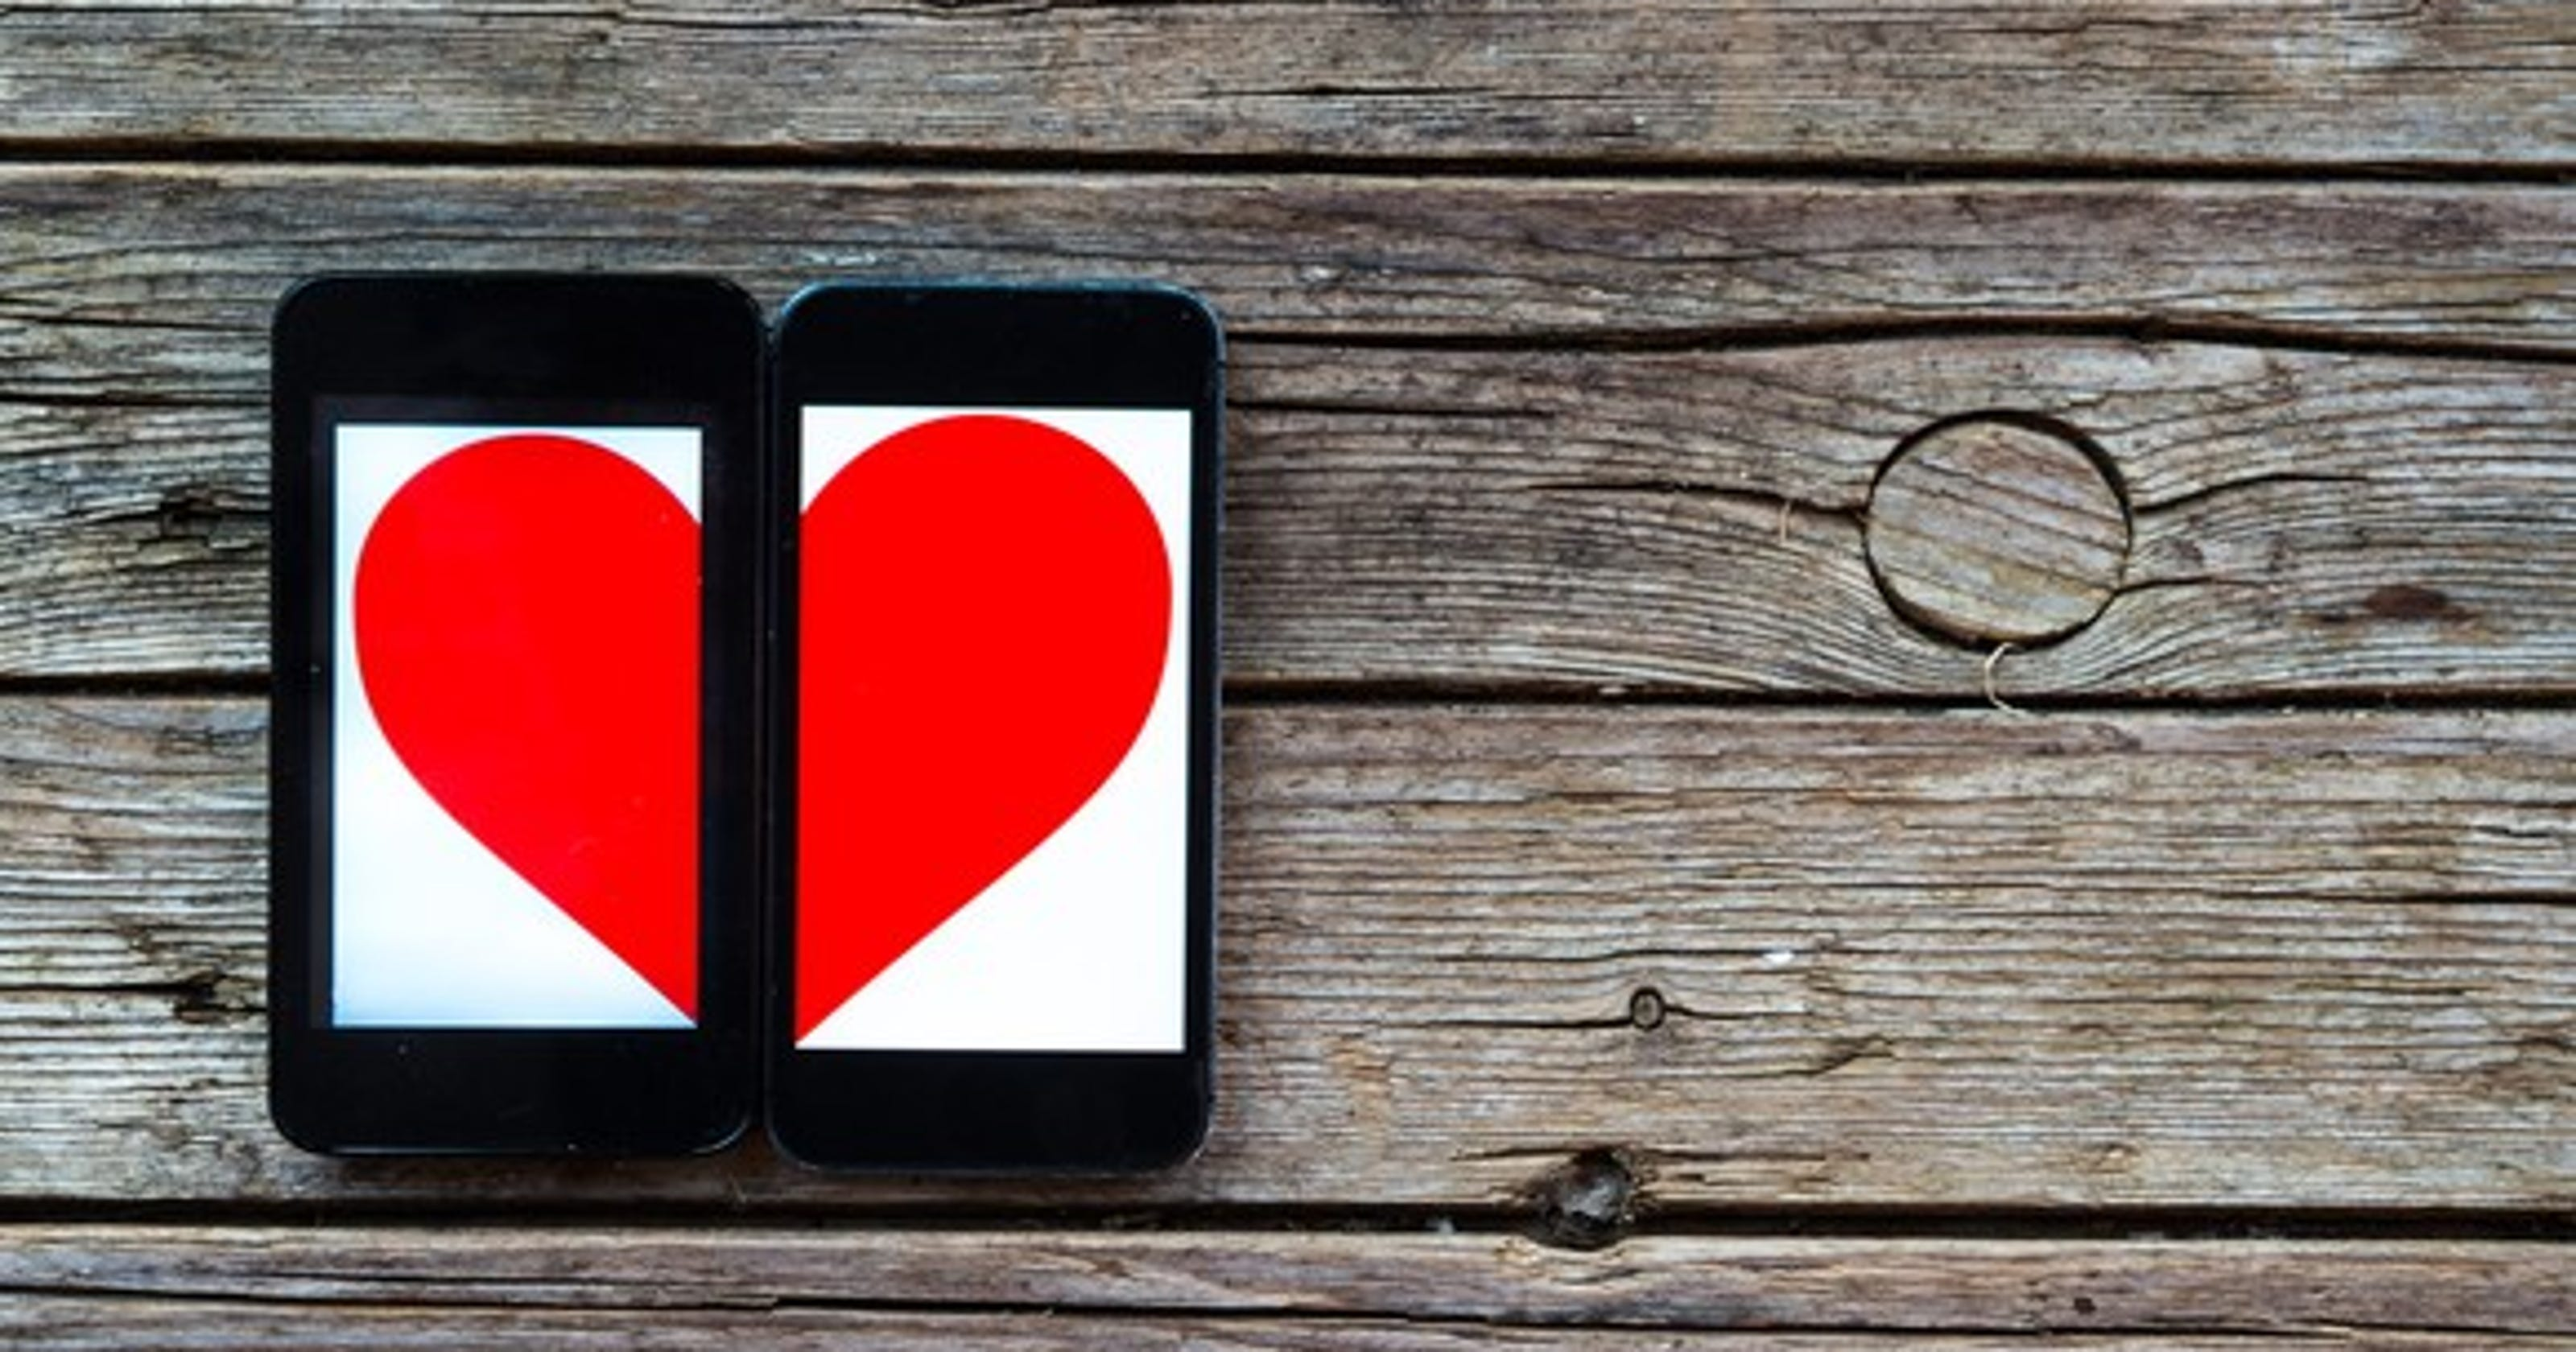 Sexual Consent Apps That Set Rules For Intimacy Come With Their Own